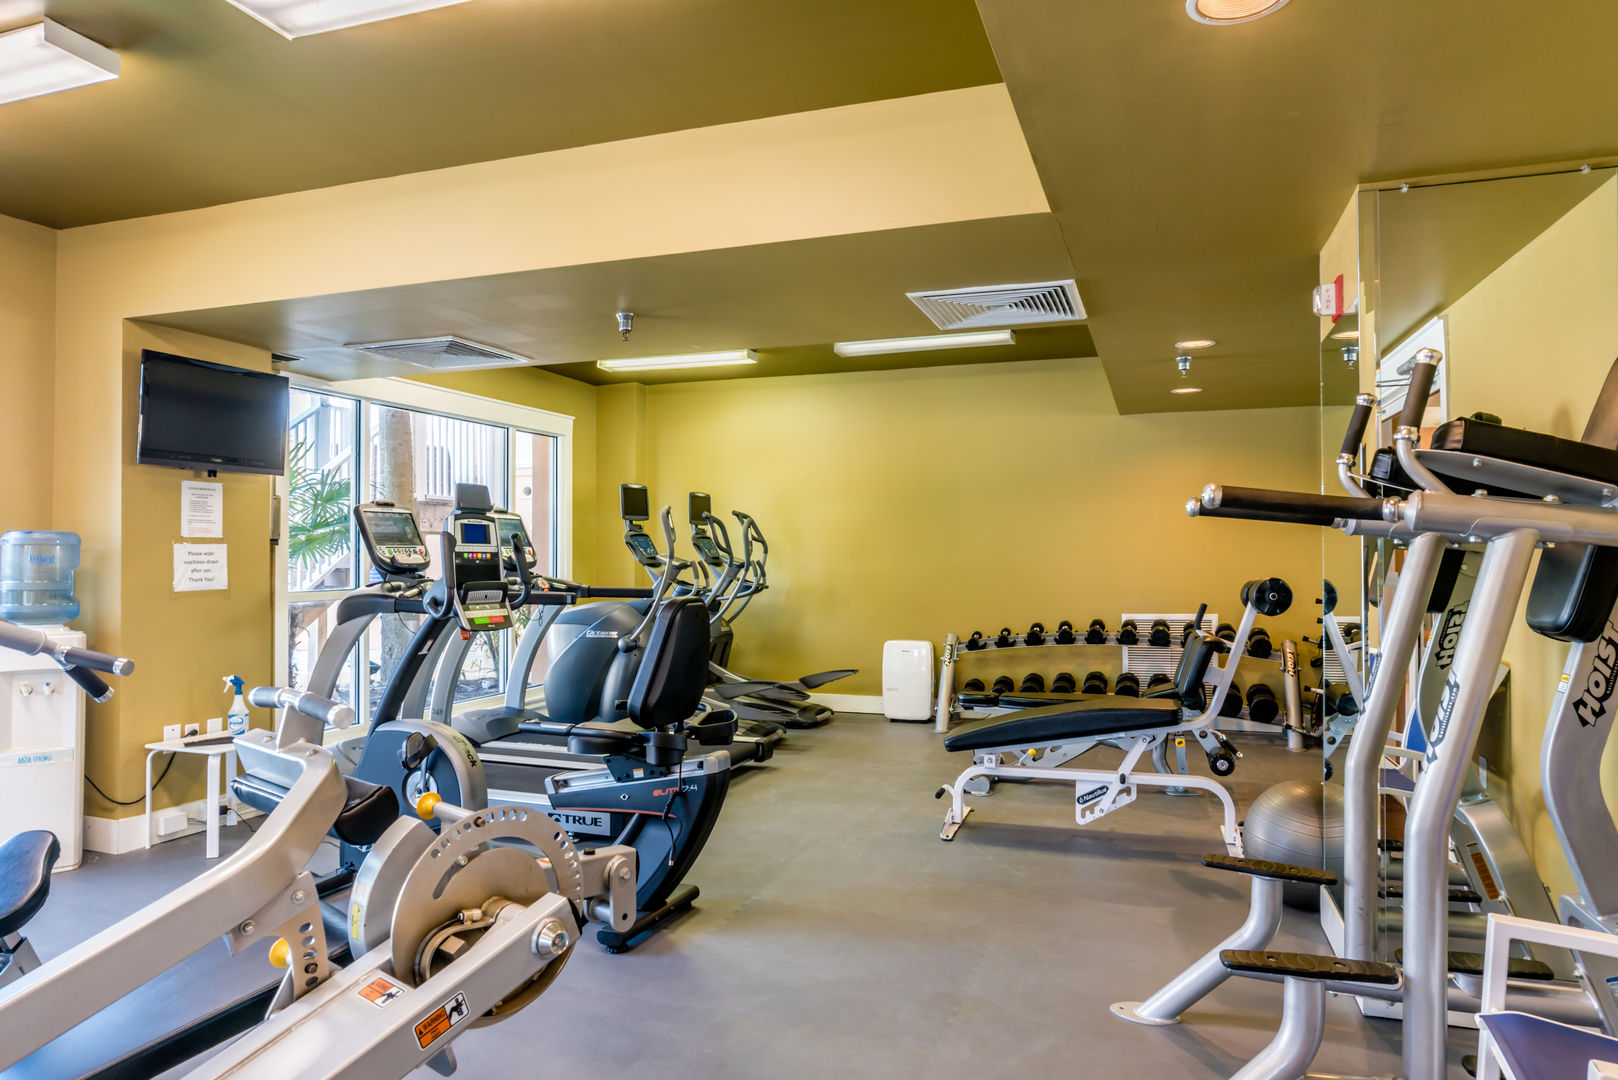 An Image of the Equipment in Fitness Center.